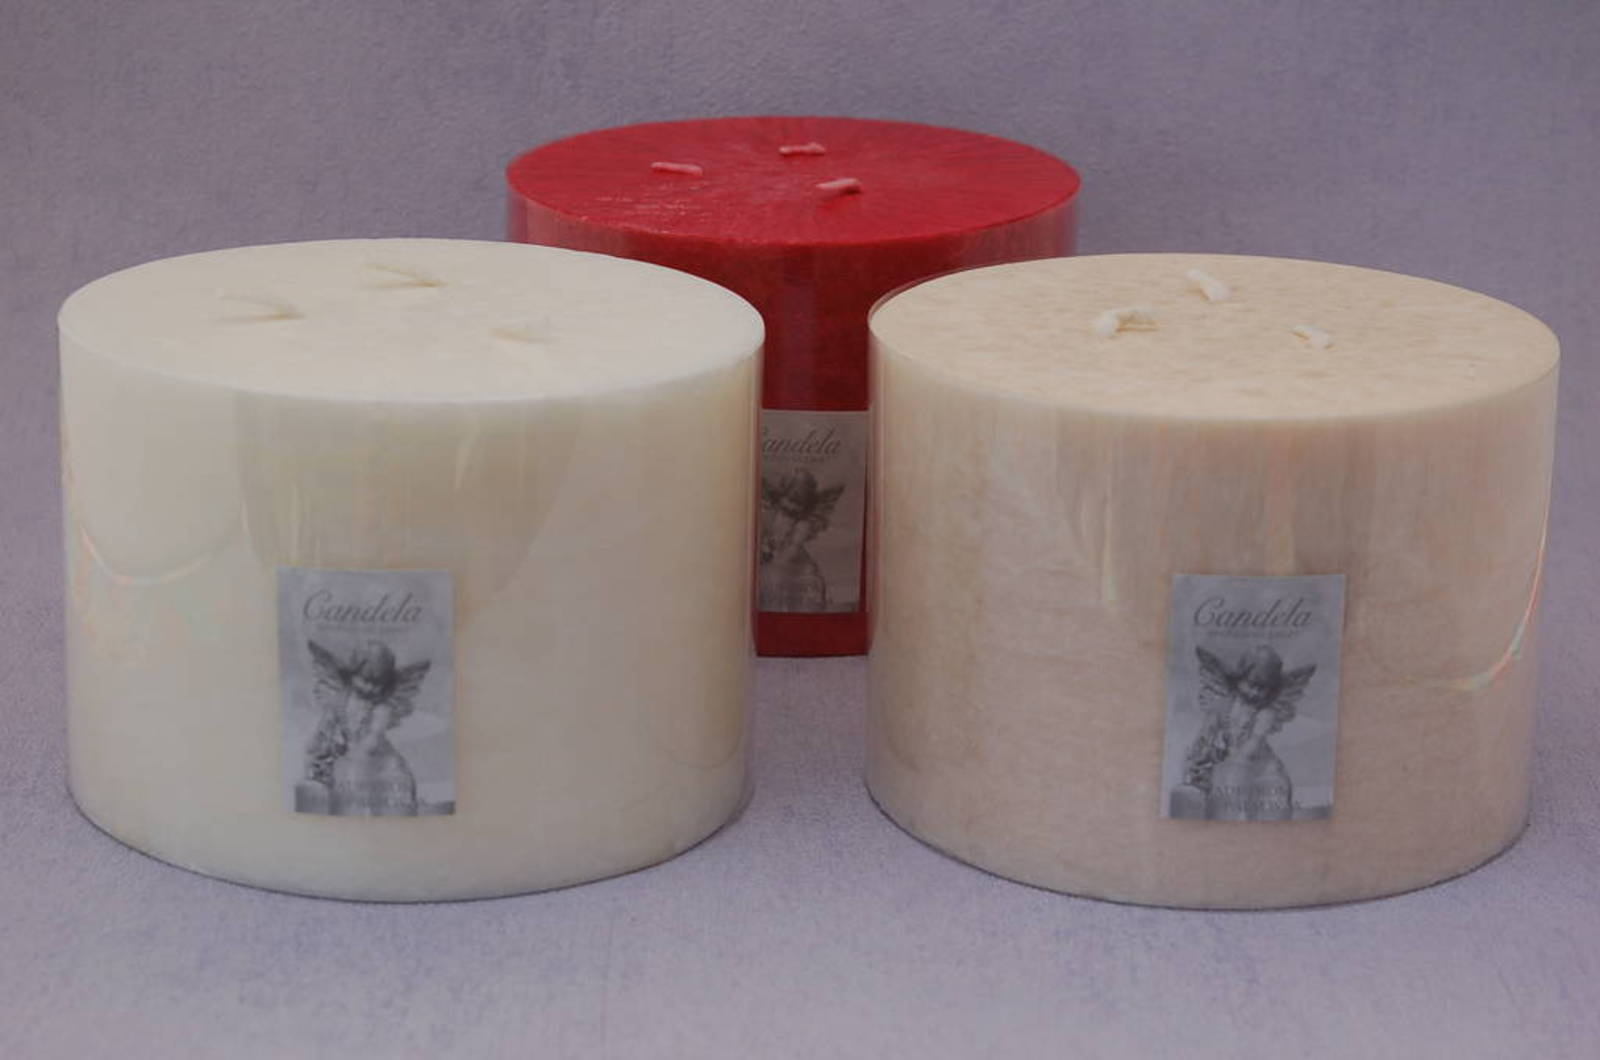 Half Giant Candles Cream/Vanilla Fragrance, Three Wick Candle image 0